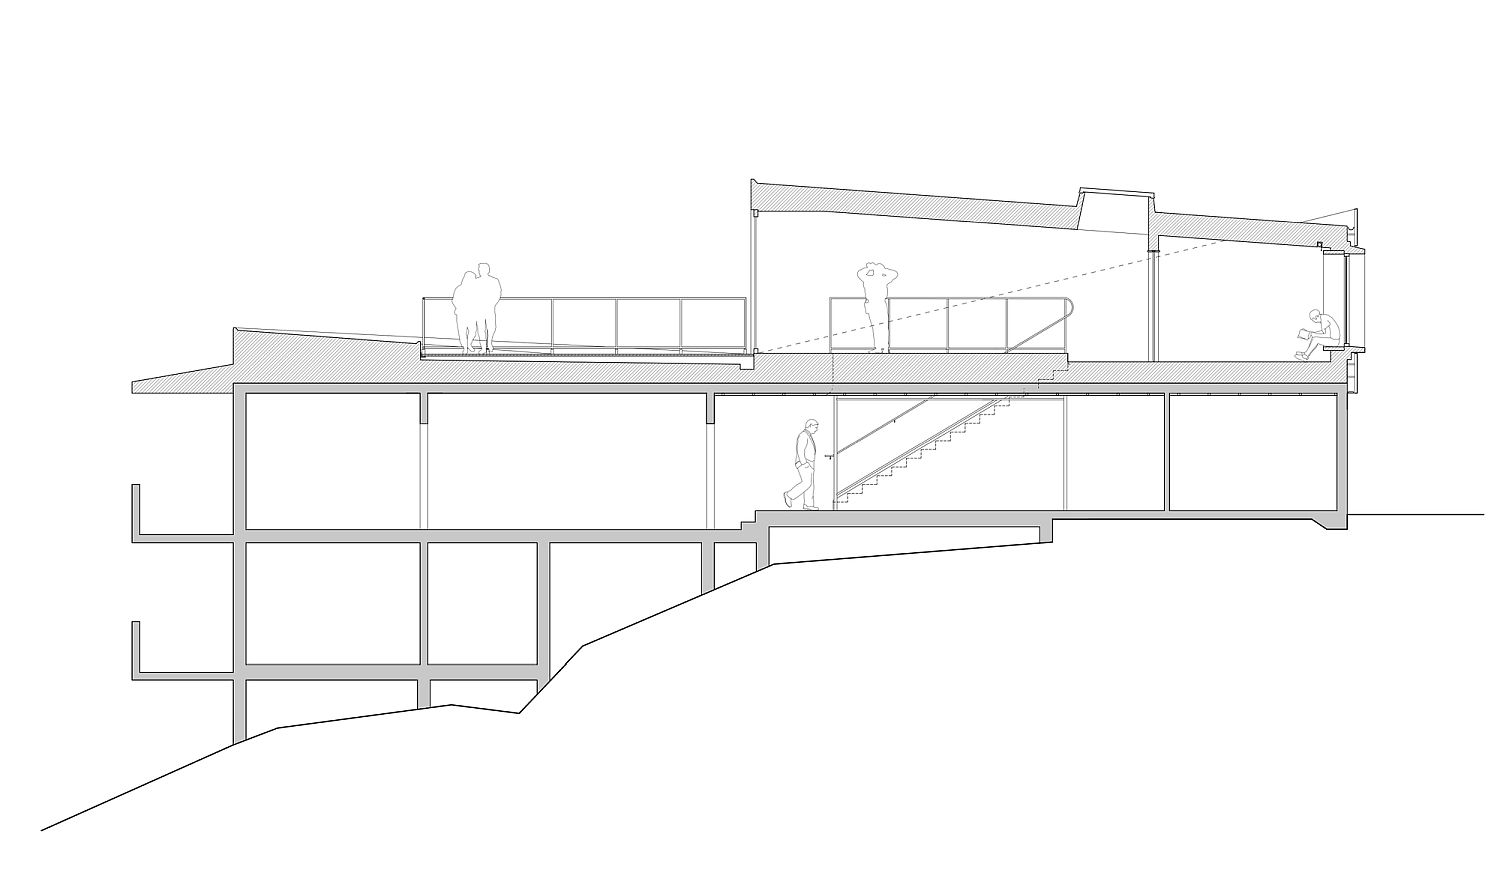 Sectional view of the Cyclops House